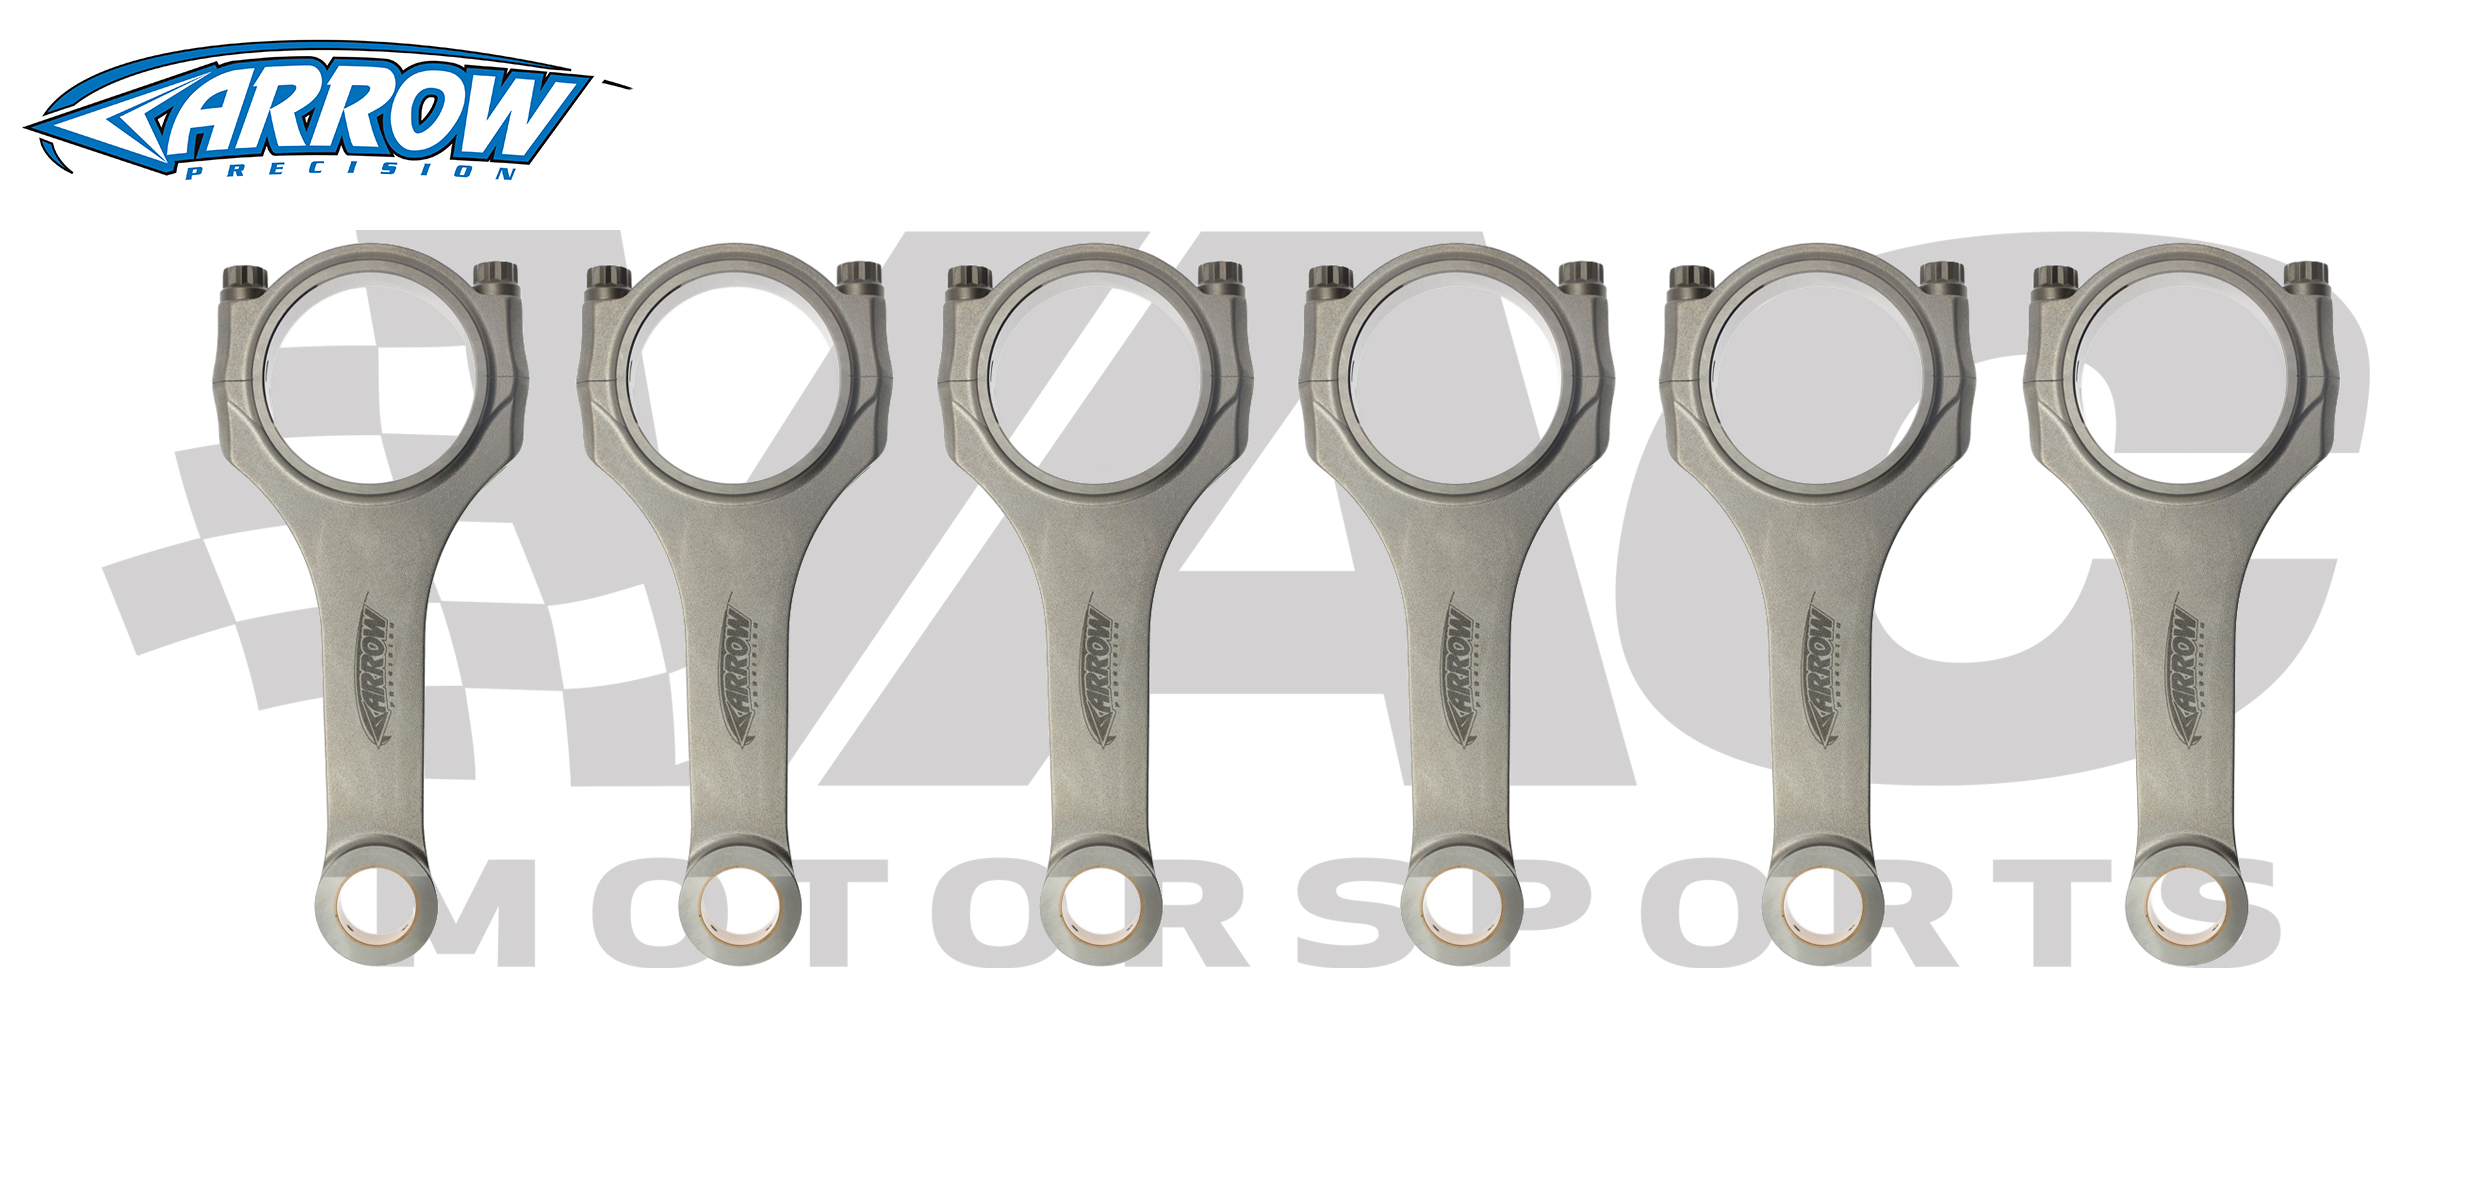 Arrow Precision Connecting Rod (BMW M54) MAIN